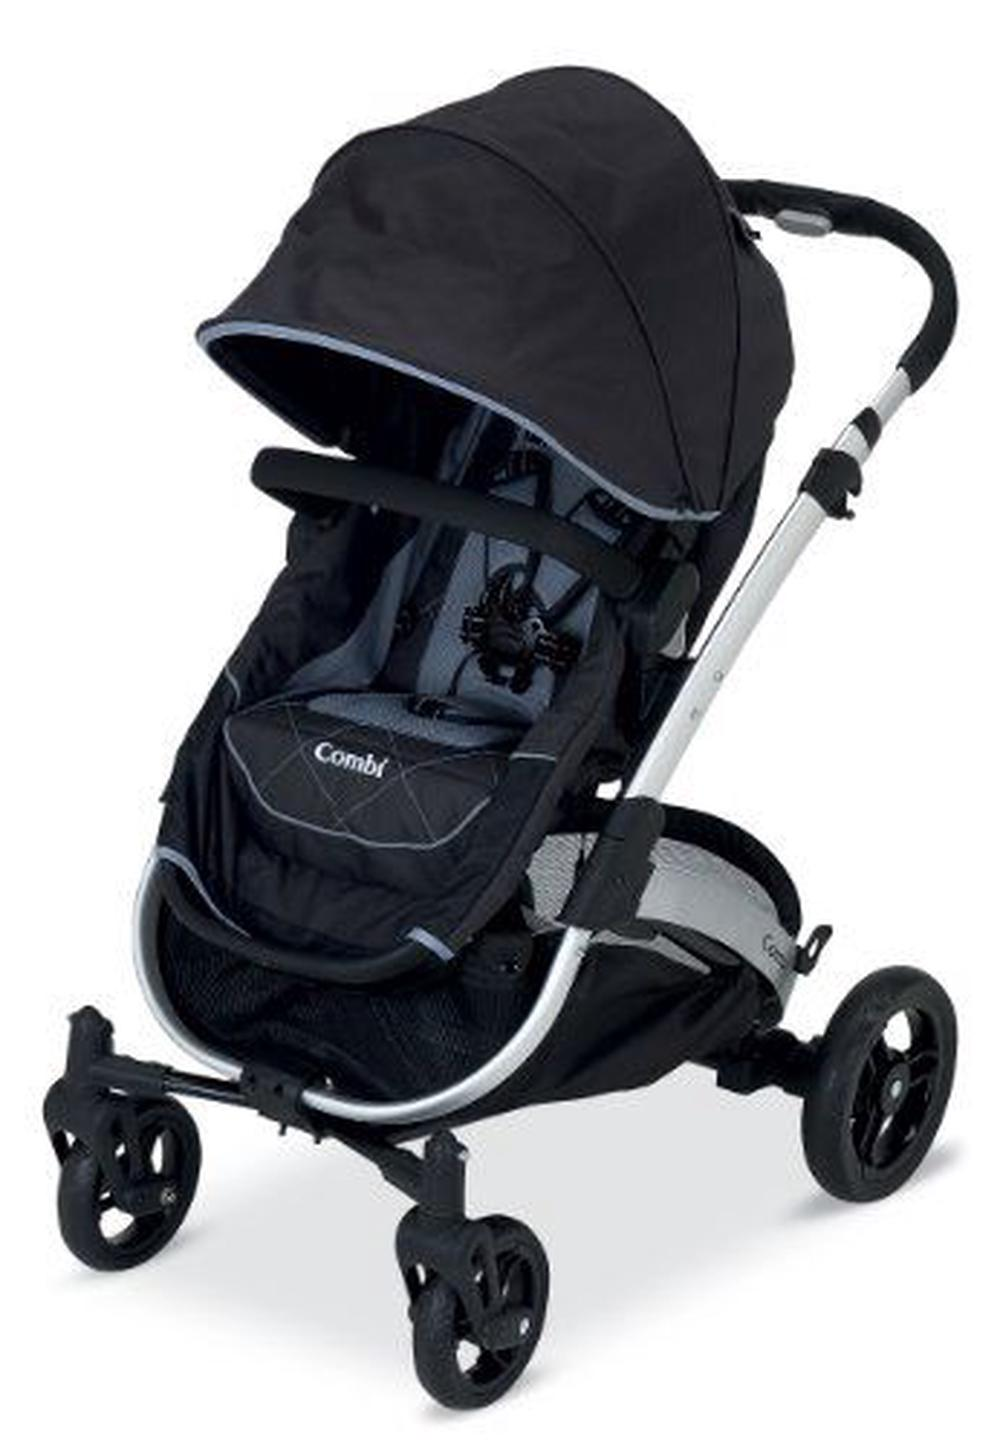 Combi Double Stroller Side By Side Combi Catalyst Stroller Graphite Buy Online At The Nile